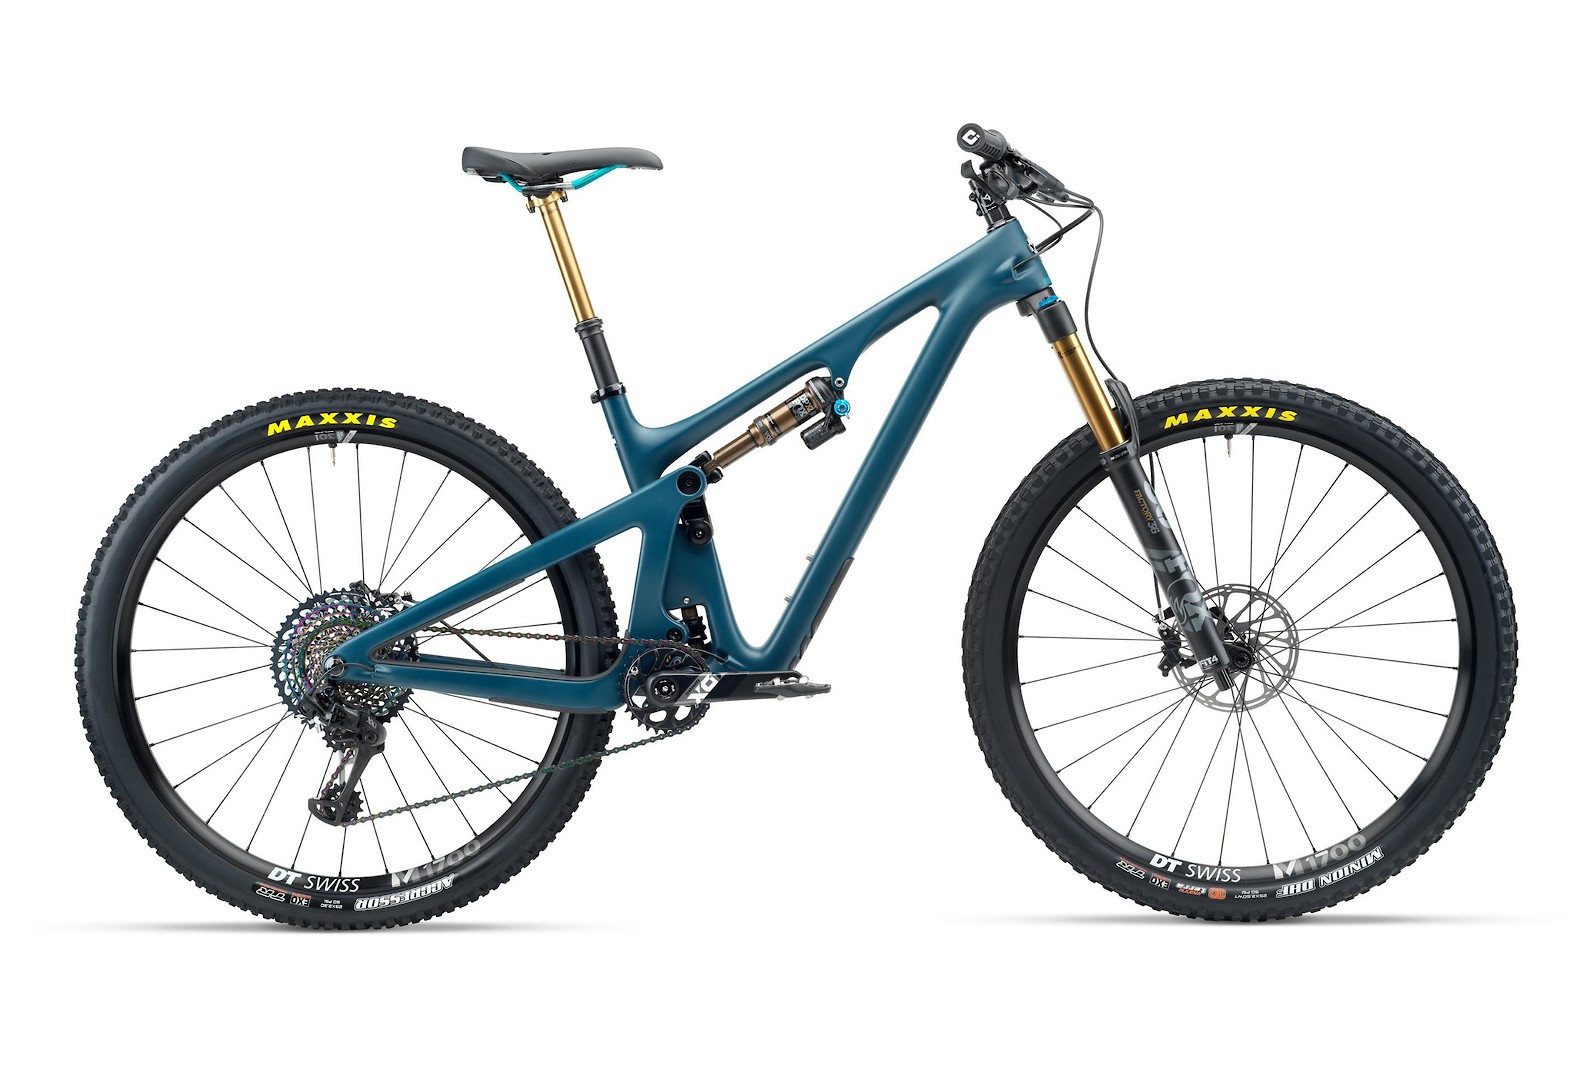 2020 Yeti SB130 (Storm; T3 build shown)